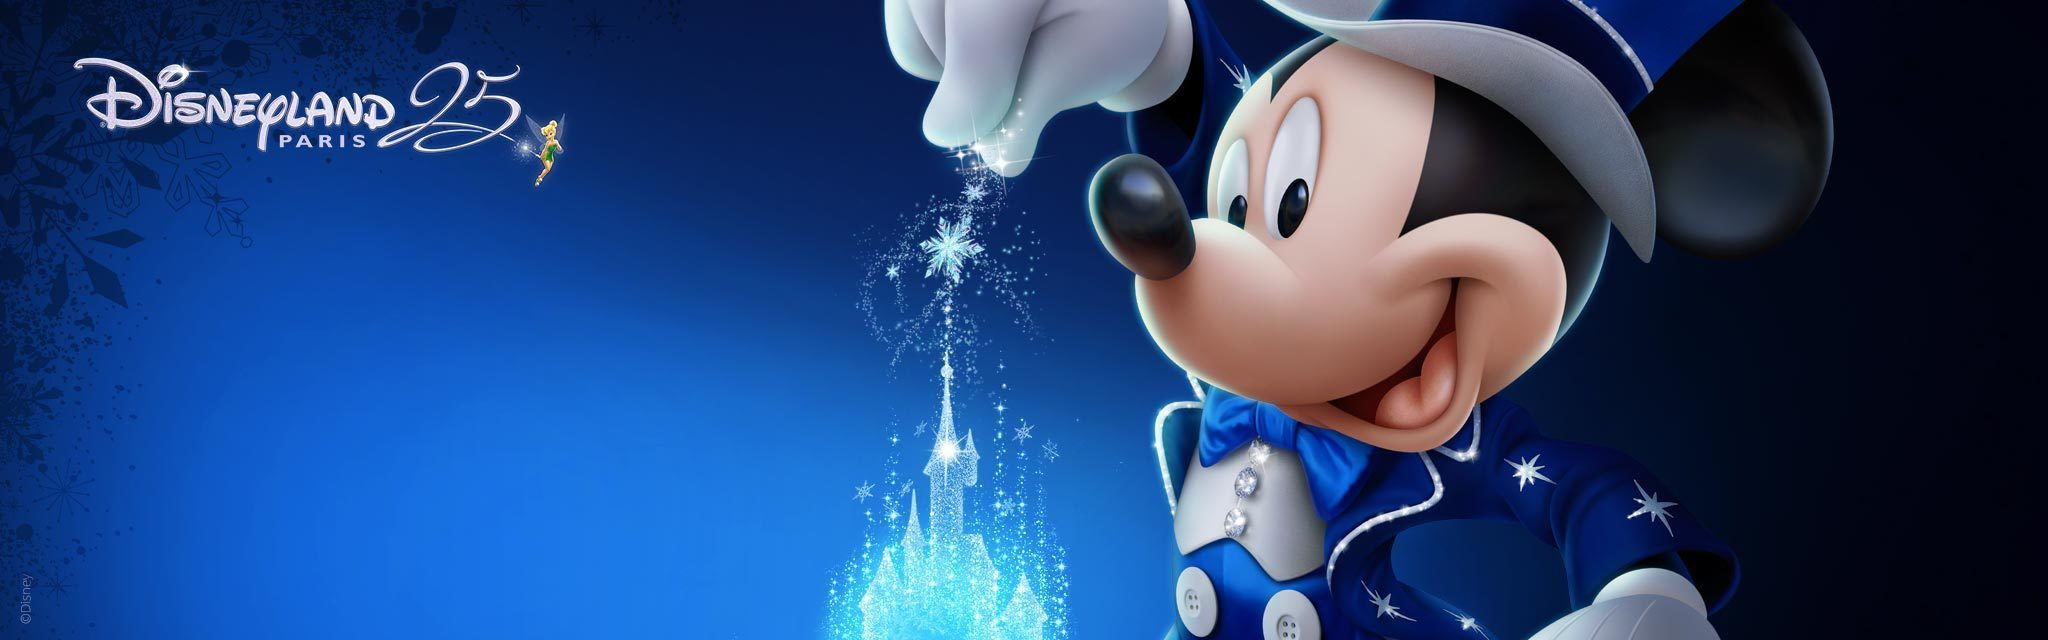 FW Hero - Disneyland Paris - September campaign